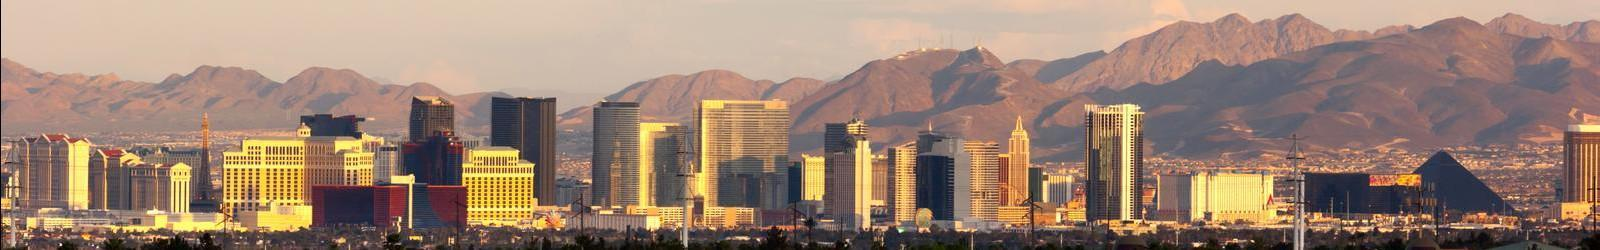 Sexual Abuse therapists in Las Vegas, Nevada